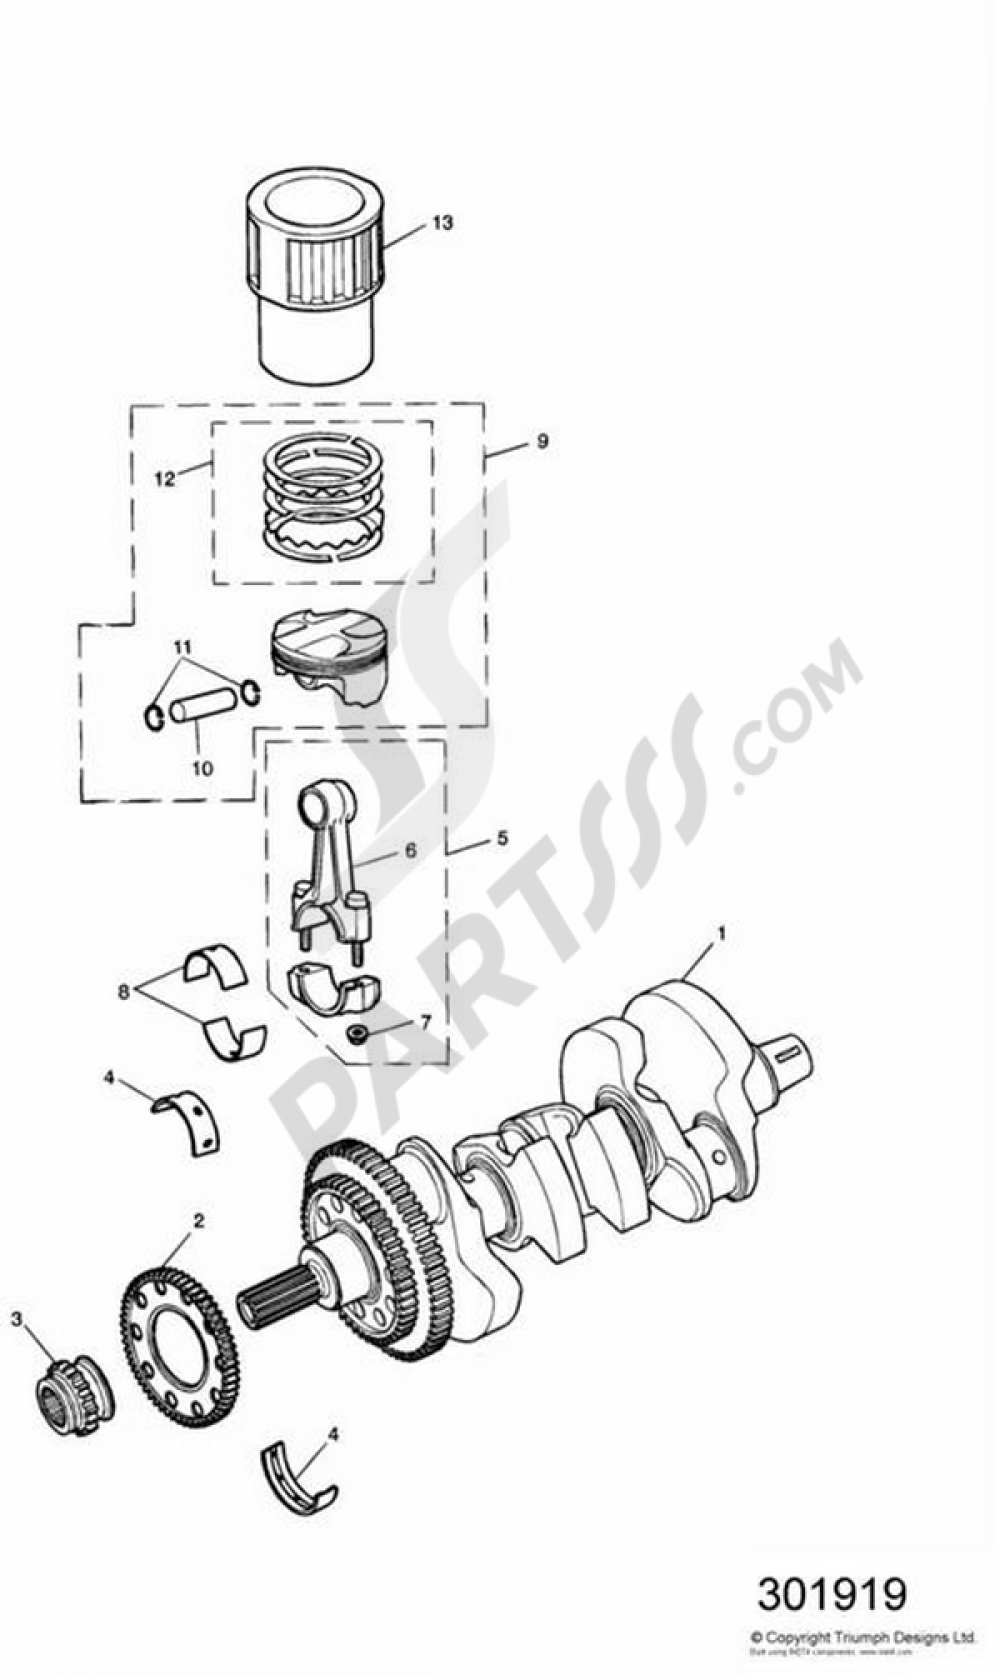 Triumph Daytona T595 Wiring Diagram Library 2002 Honda Shadow 1100 Crankshaft Conn Rod Pistons And Liners 955i Bastidor Hasta 132513